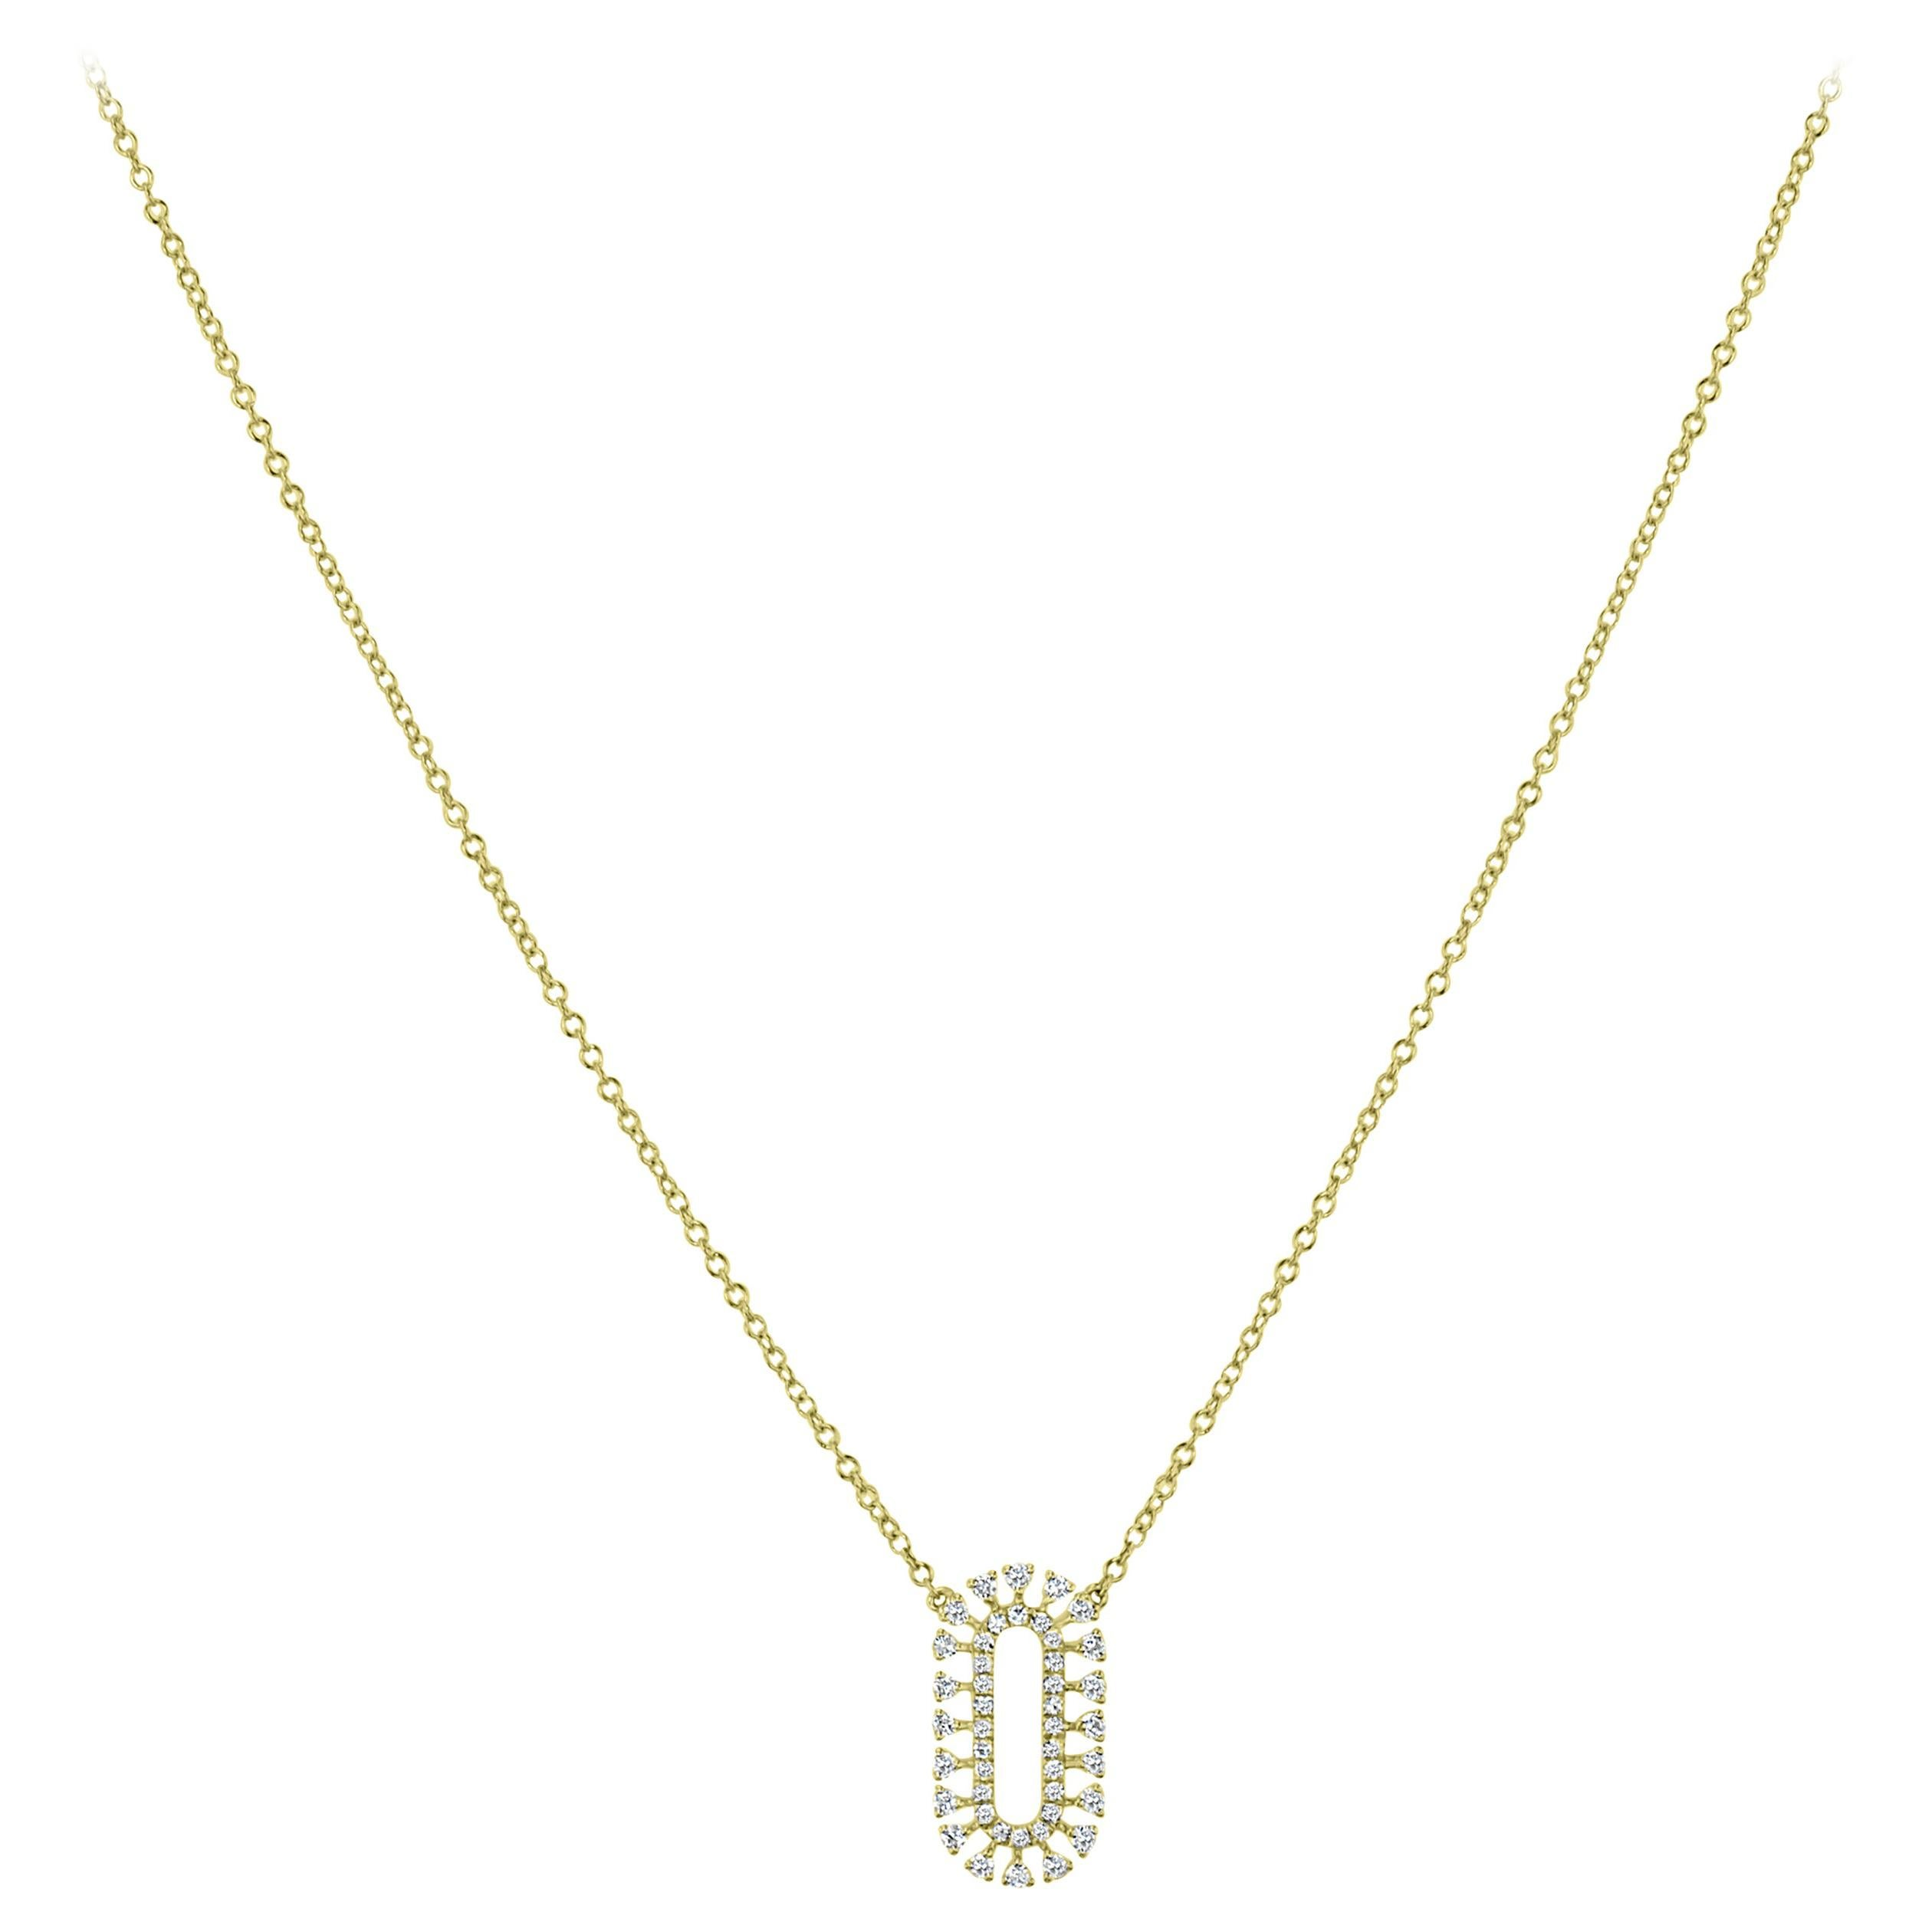 Diamond Pendant Necklace in 18k Yellow Gold